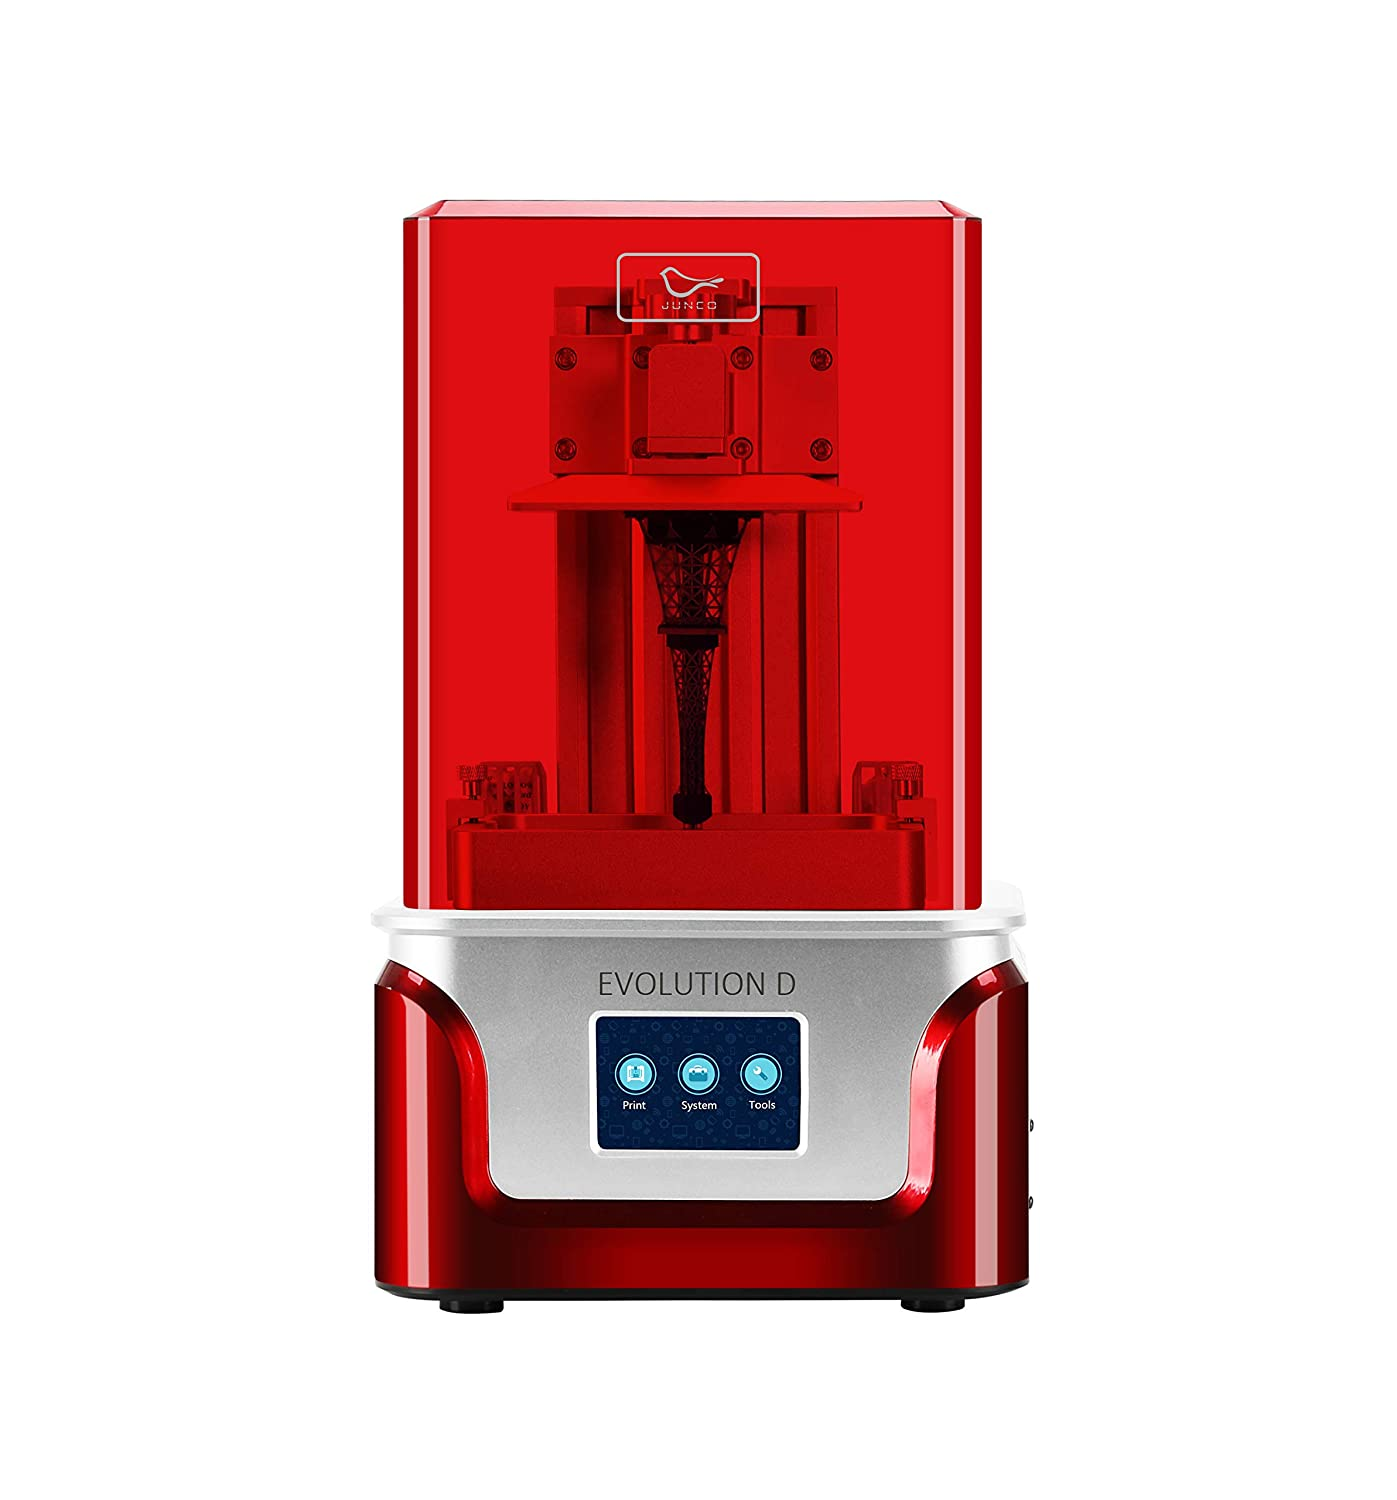 X 2.55 2020 JUNCO Evolution D 3D Printer UV LCD Resin Printer with Dual Z axis Liner Rail White W Build Size 4.52 Equipped with Friendly Resin X 5.9(H L 3.5 Inch Touch Screen